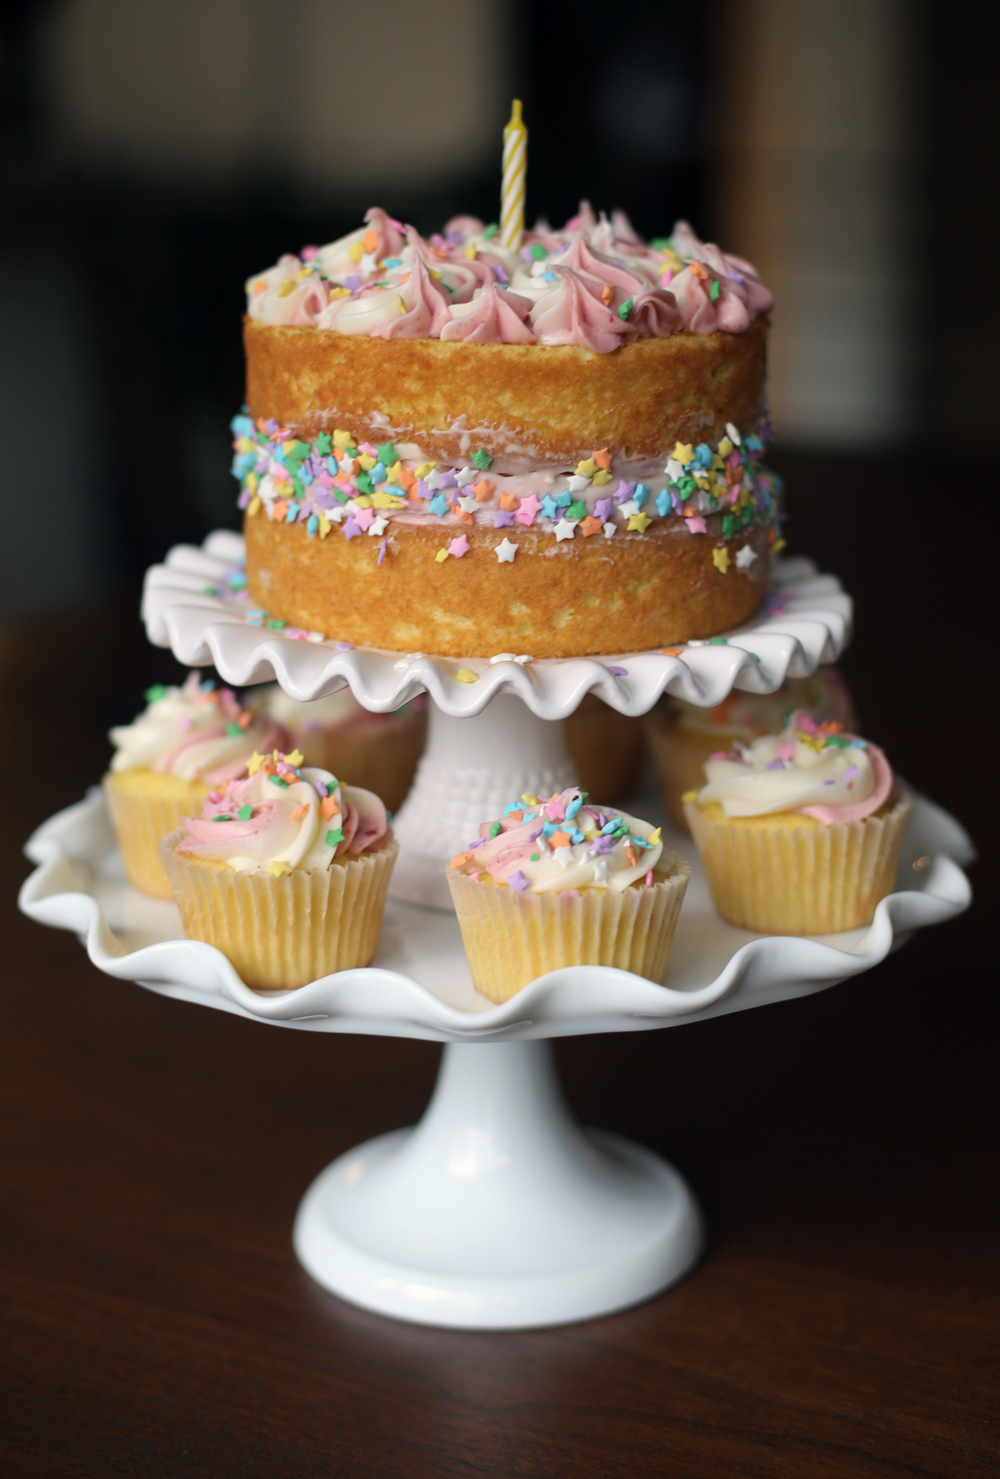 Rainbow Lemon Cake with Strawberry Cream Cheese Icing 6.jpg